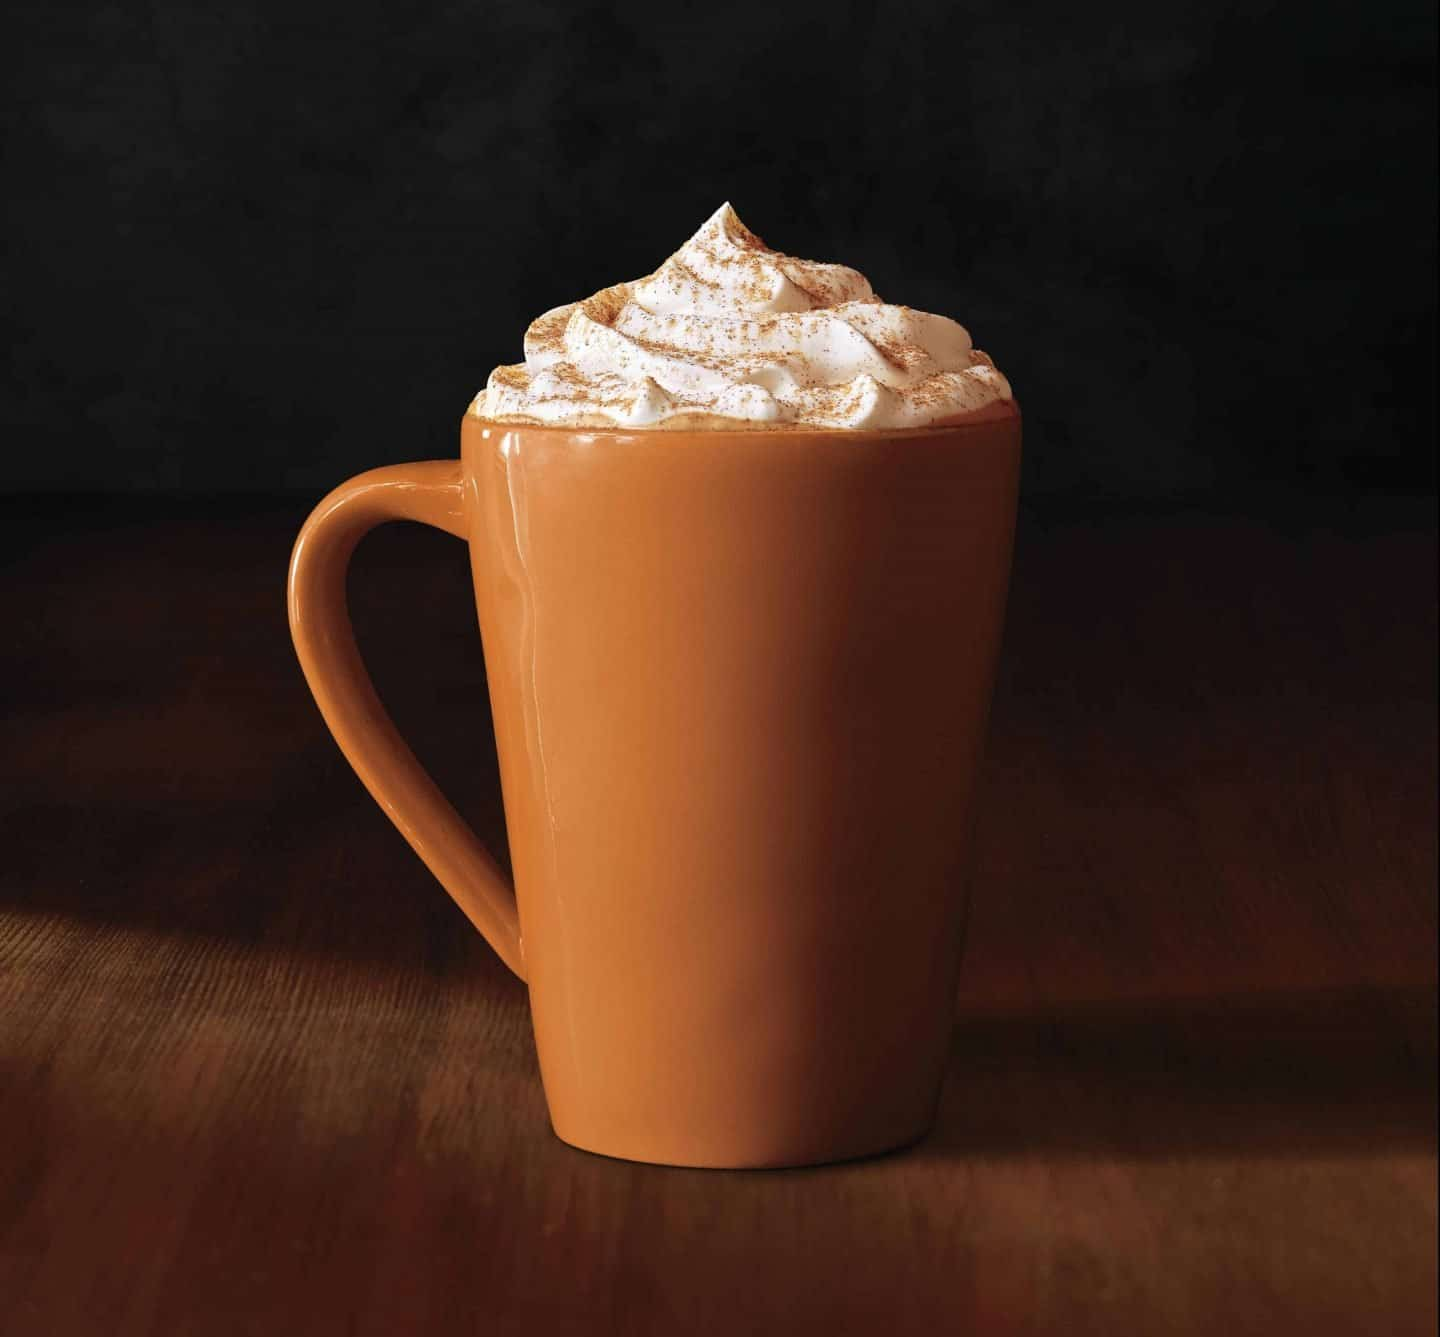 Is Starbucks pumpkin spice latte gluten free?